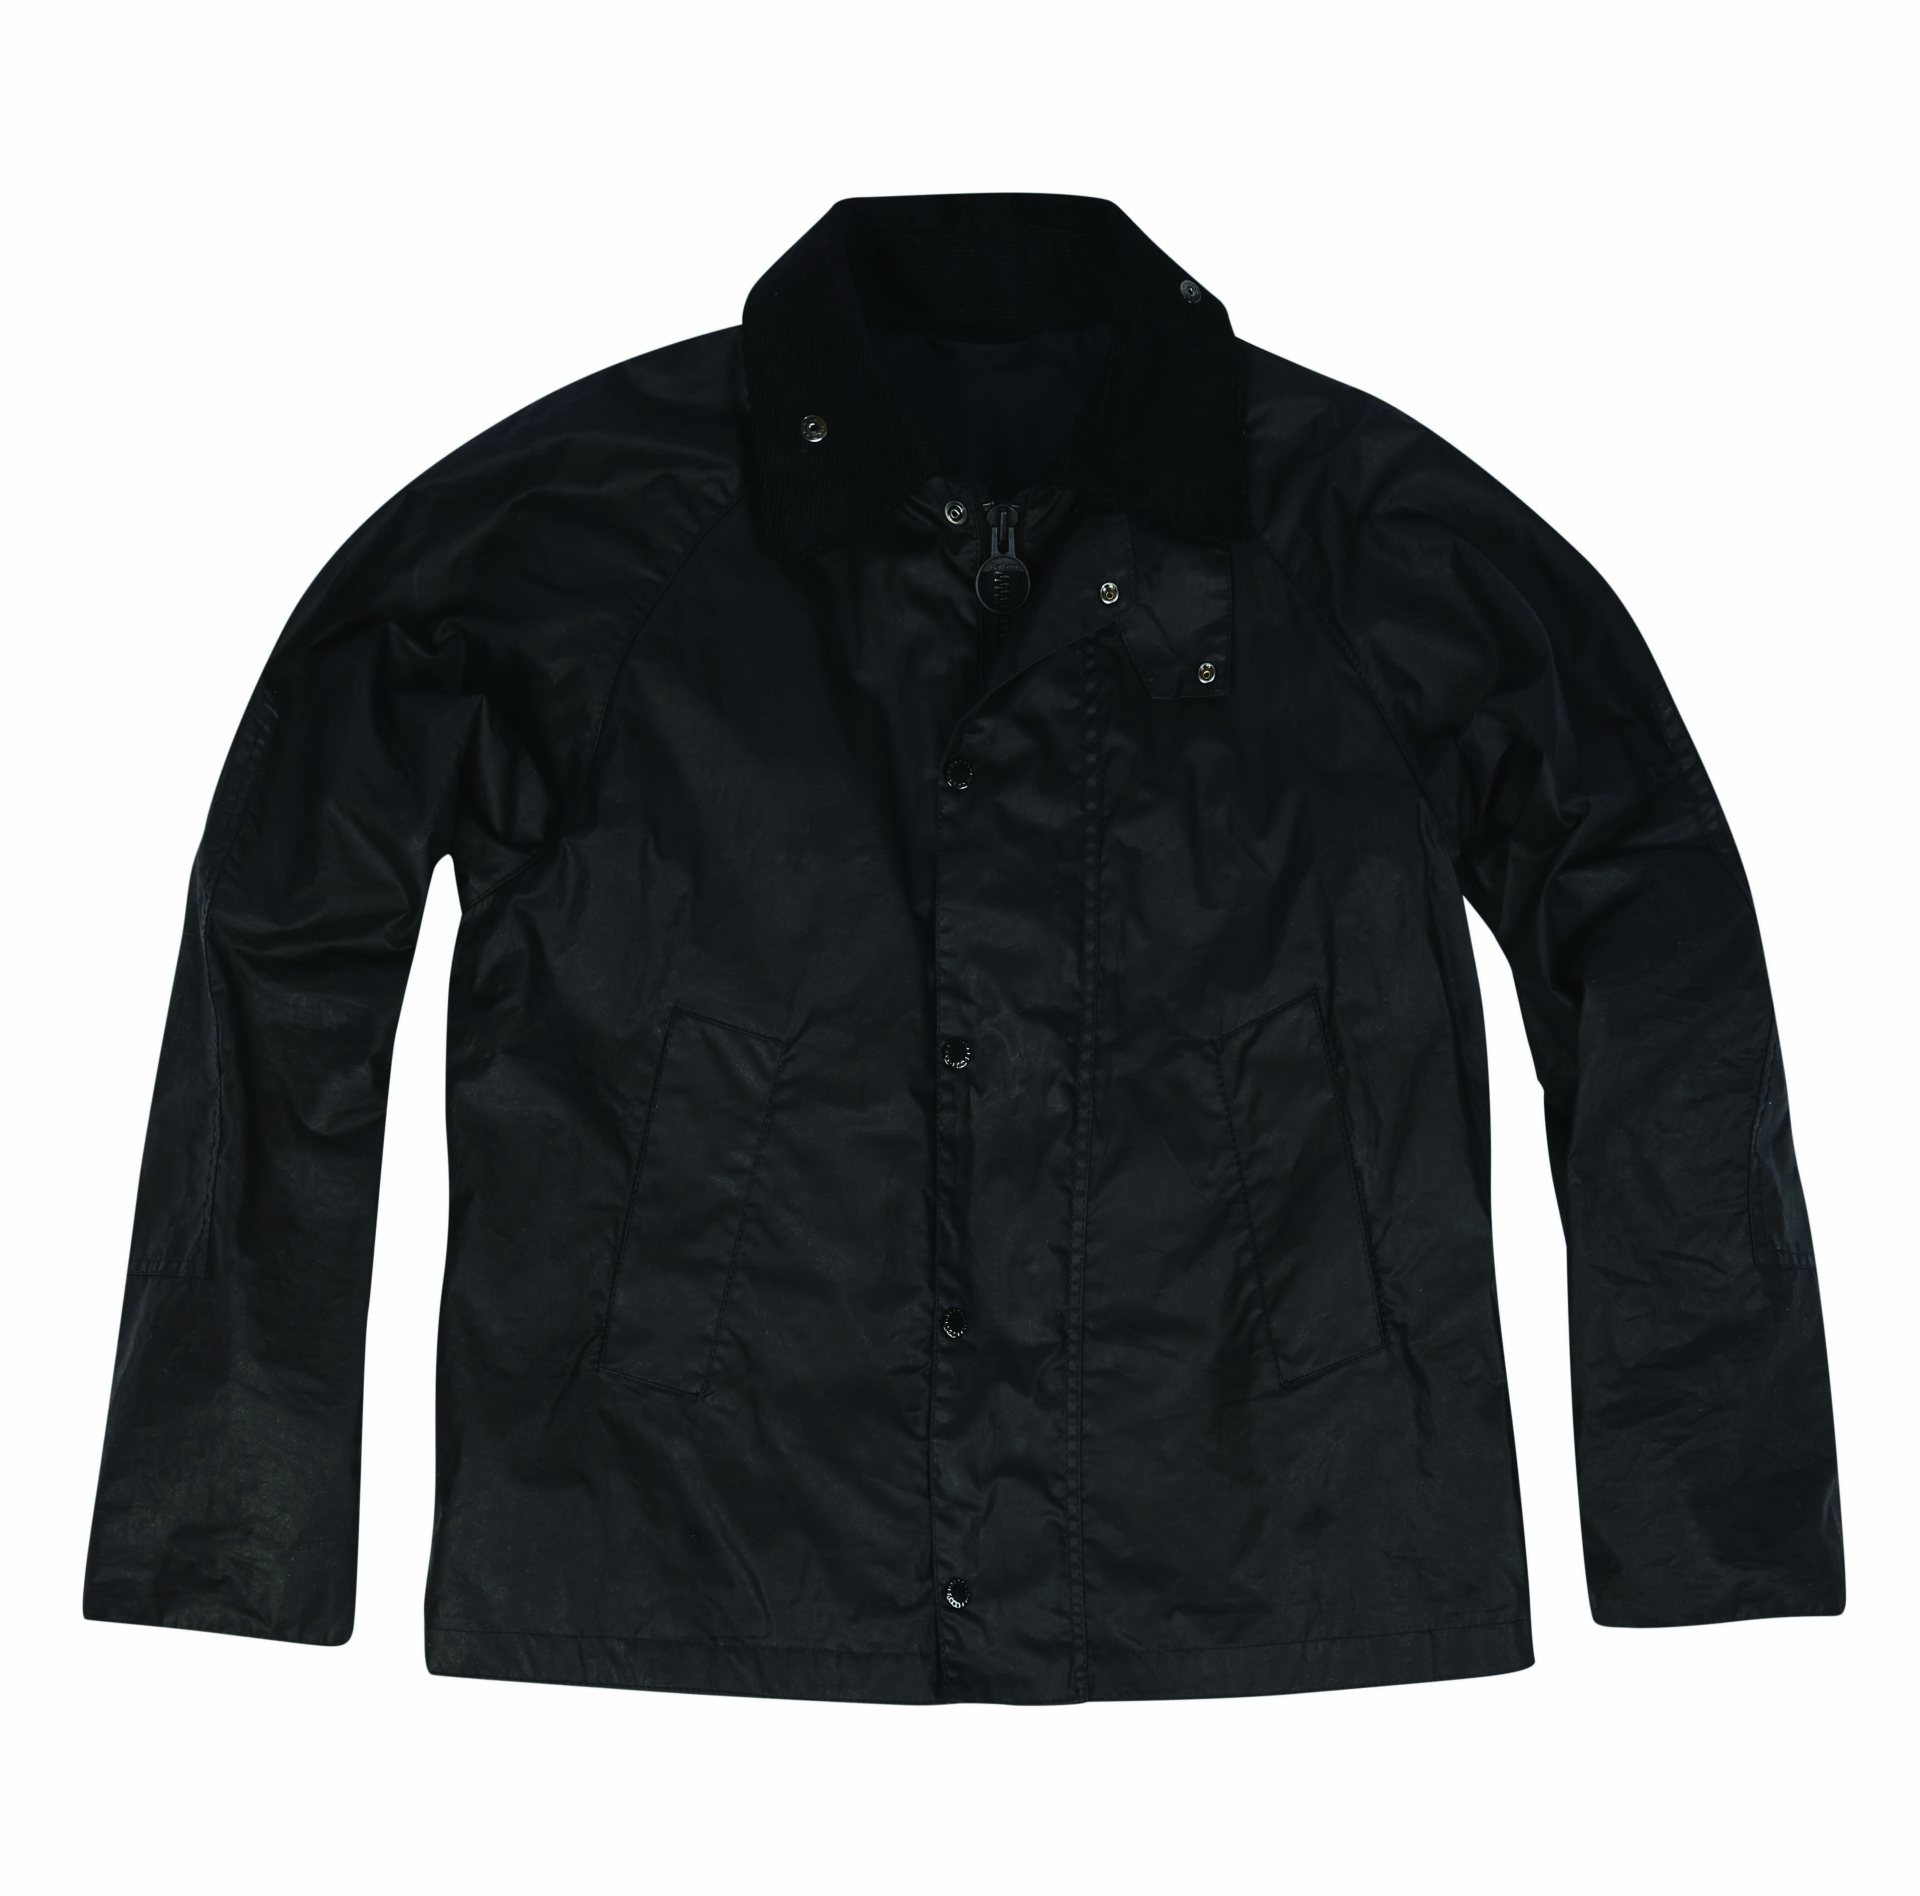 BARBOUR X ENGINEERED GARMENTS - GRAHAM - MWX1436 - £369